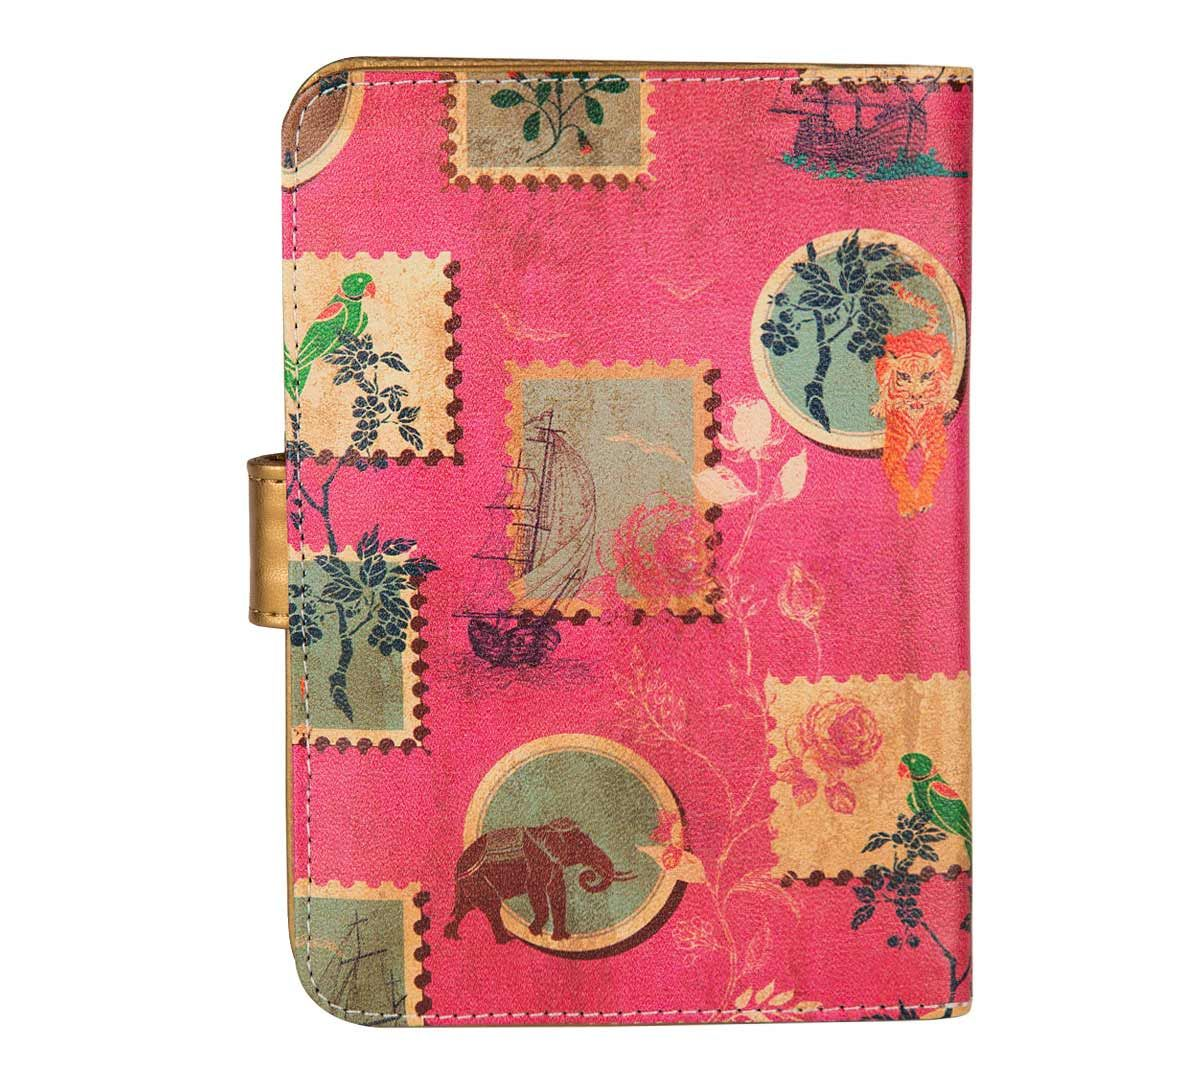 75dfe9b8c India Circus Wildlife Stamps Passport Cover. Tap to expand